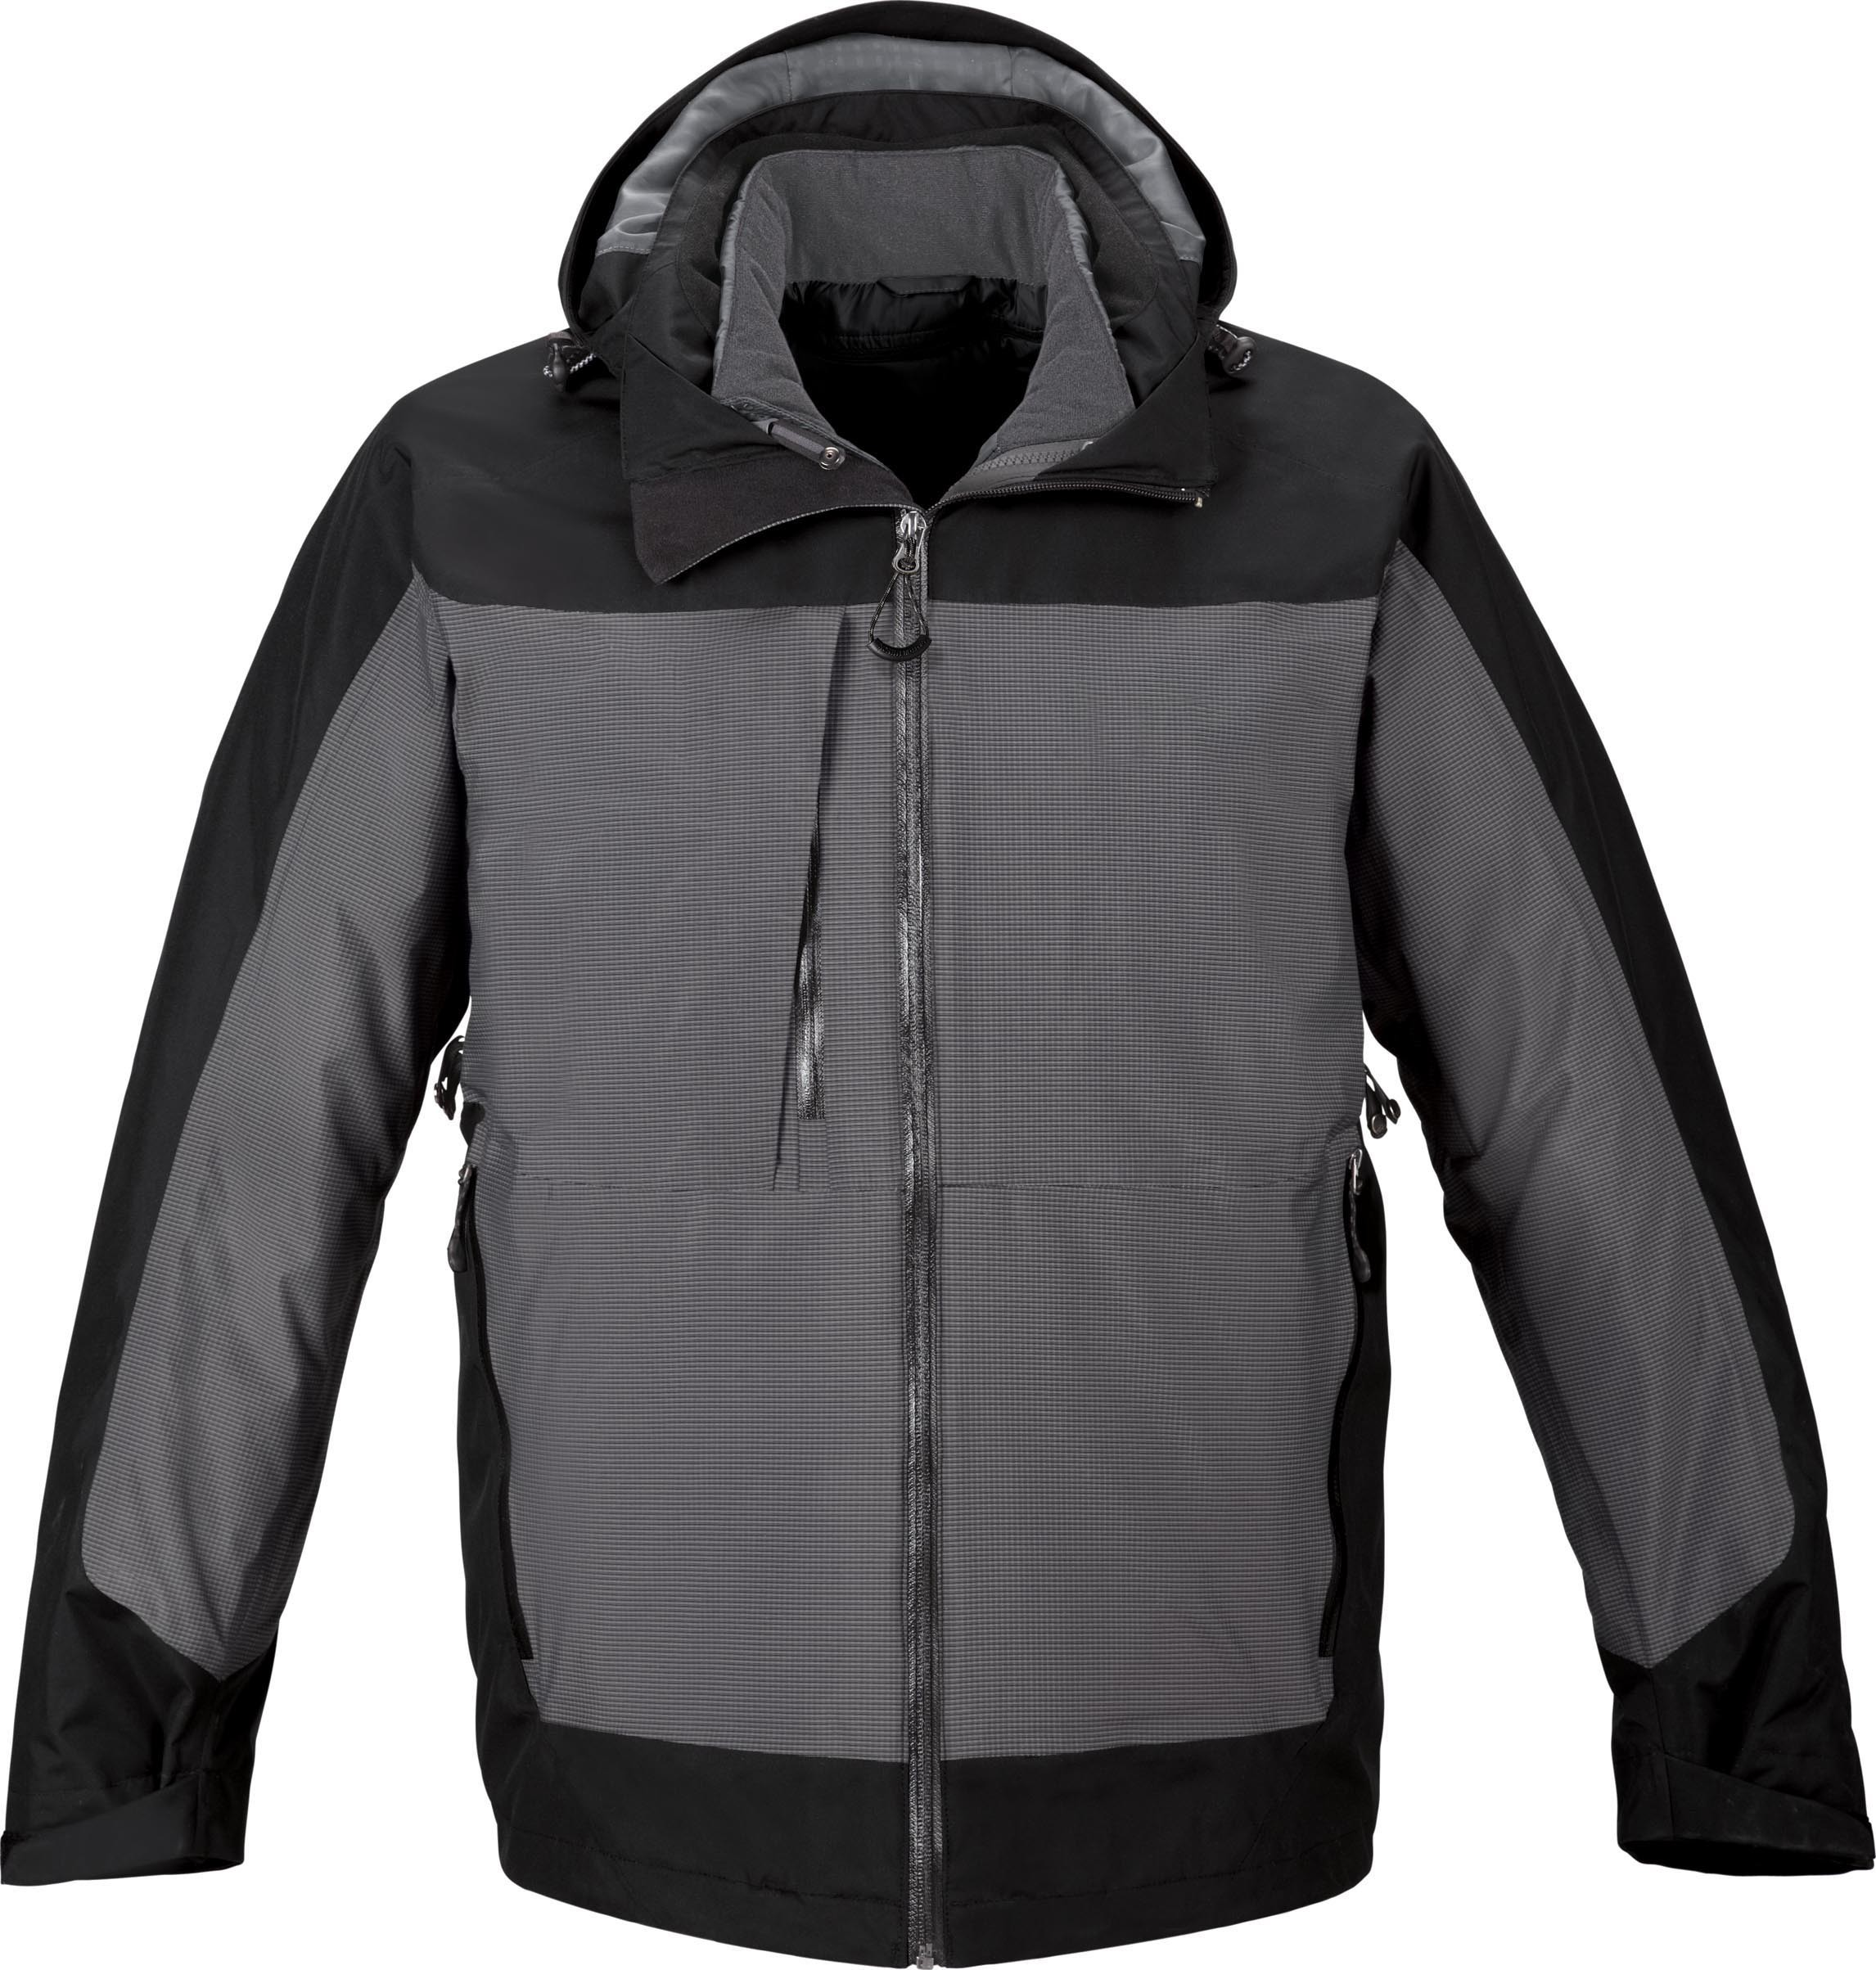 Ash City UTK 3 Warm.Logik 88663 - Alta Men's 3-In-1 Seam-Sealed Jacket With Insulated Liner